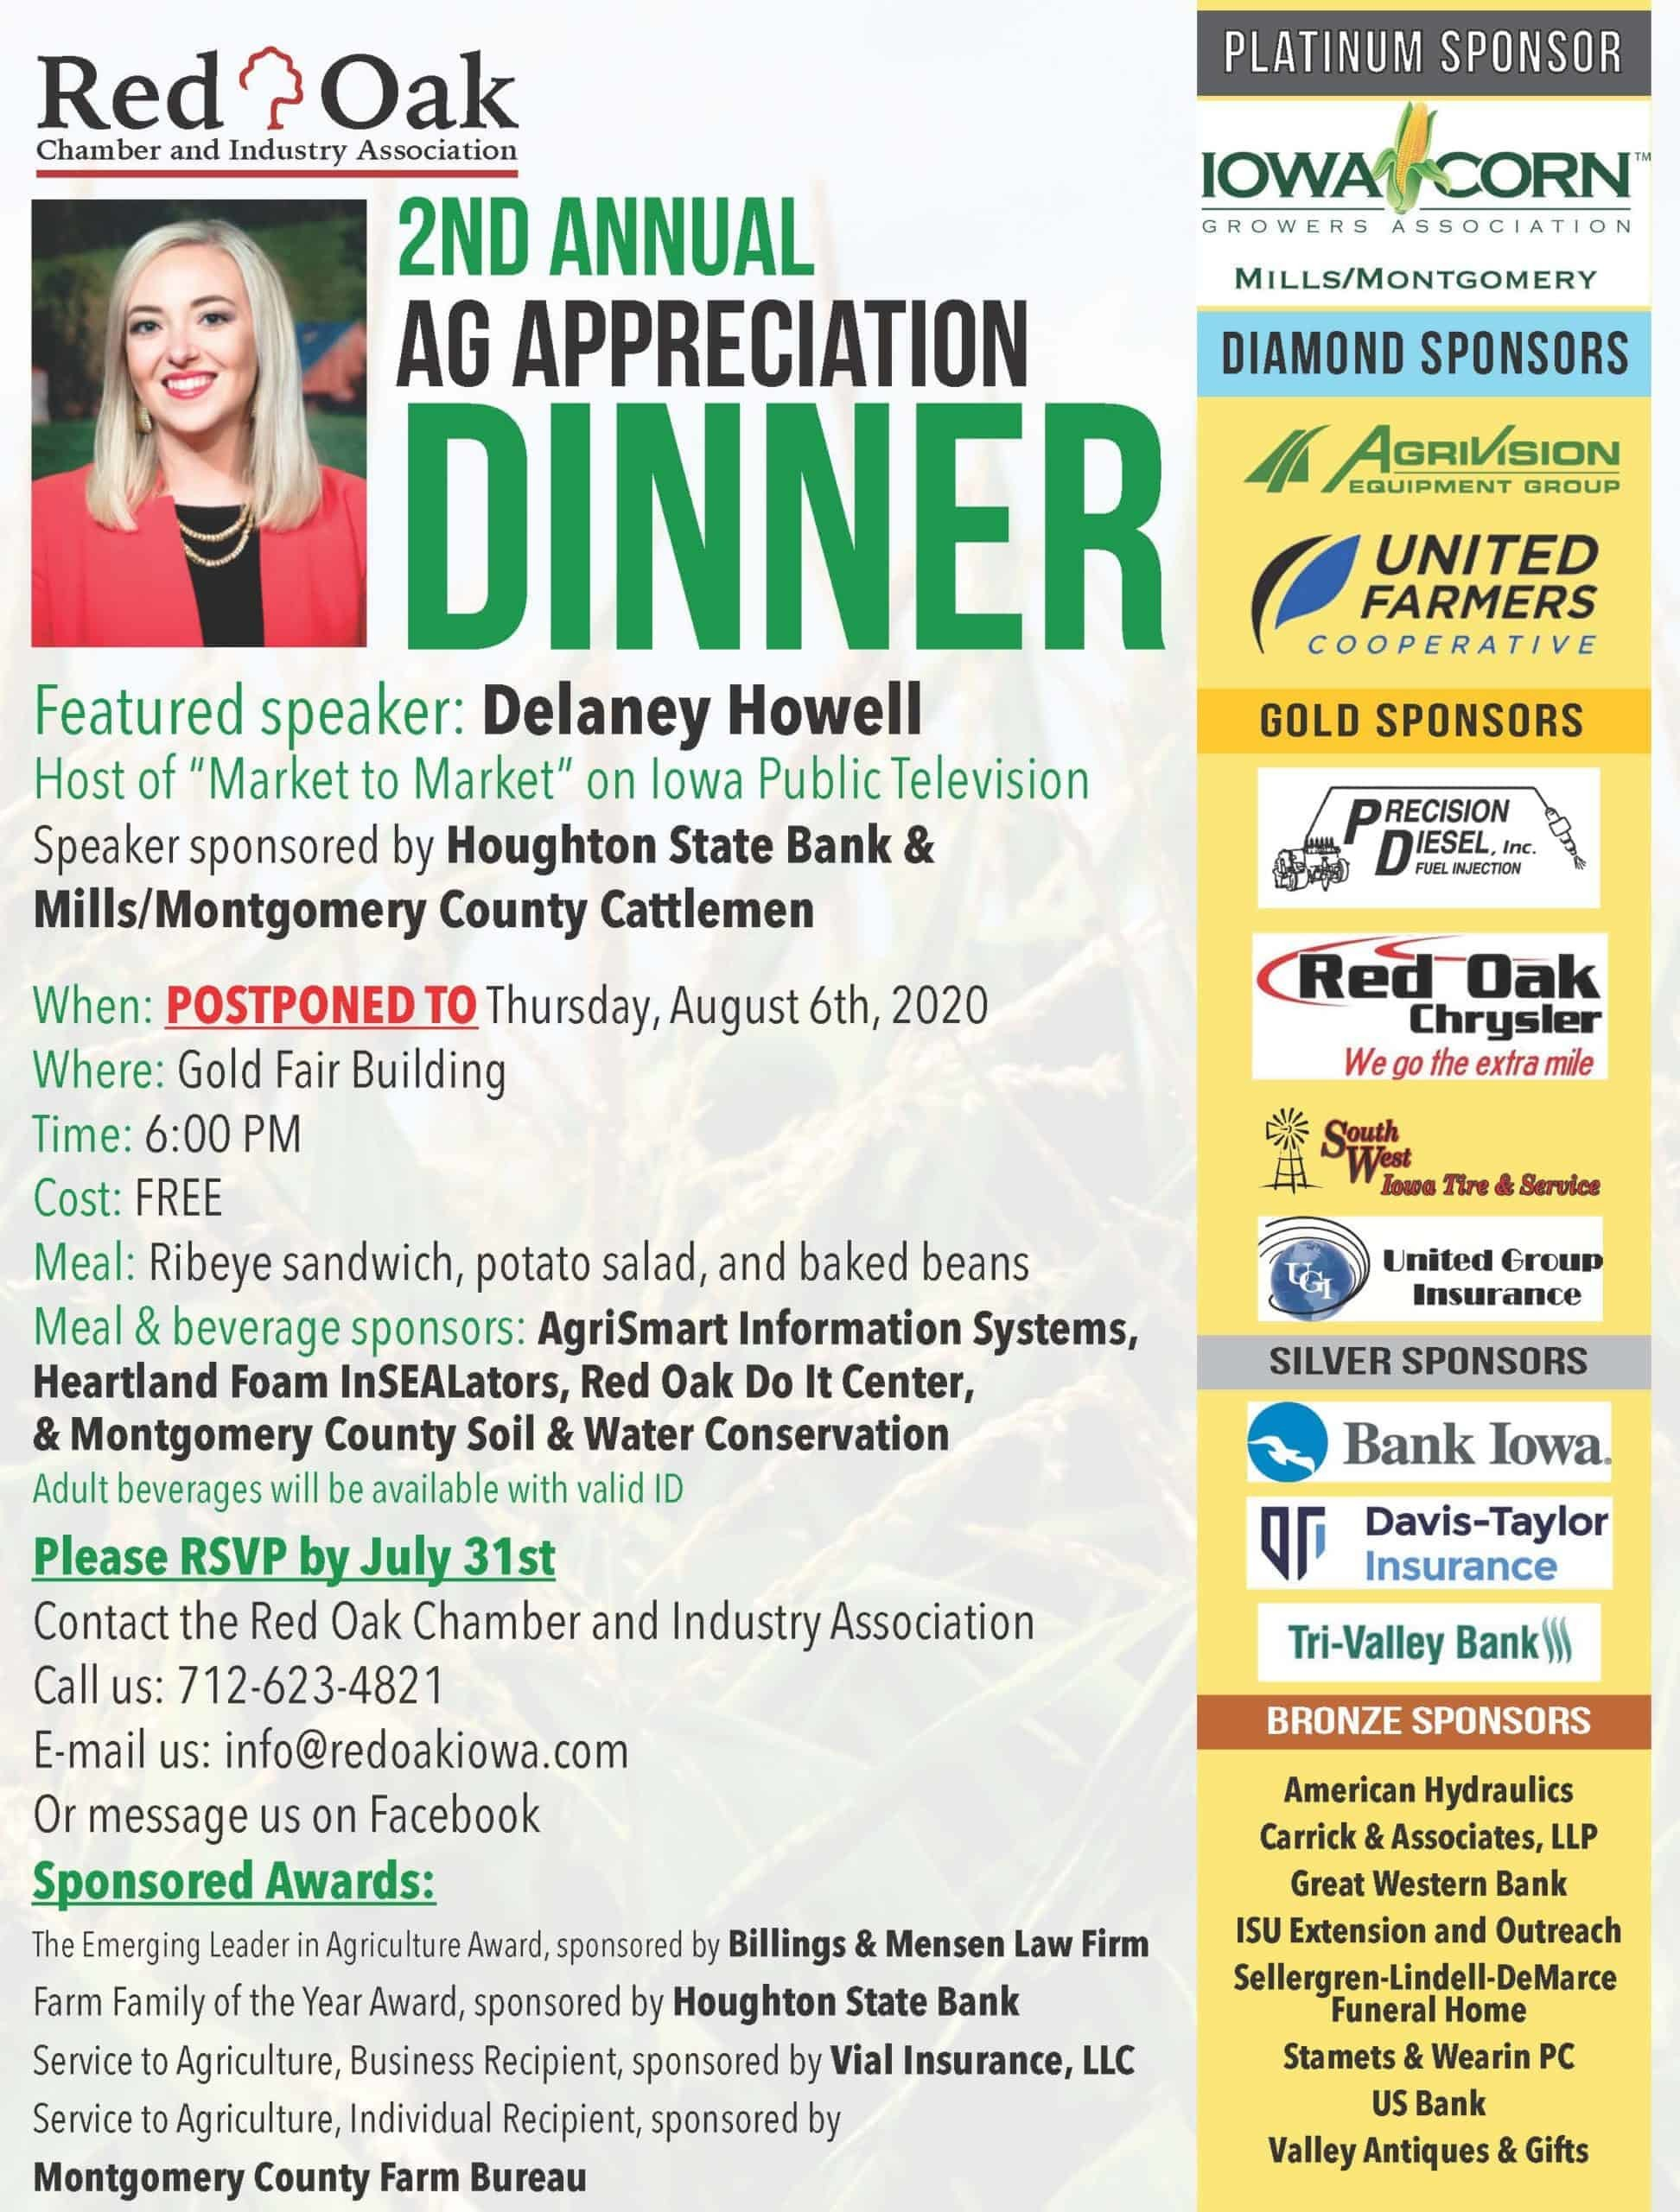 Annual Ag Appreciation Dinner